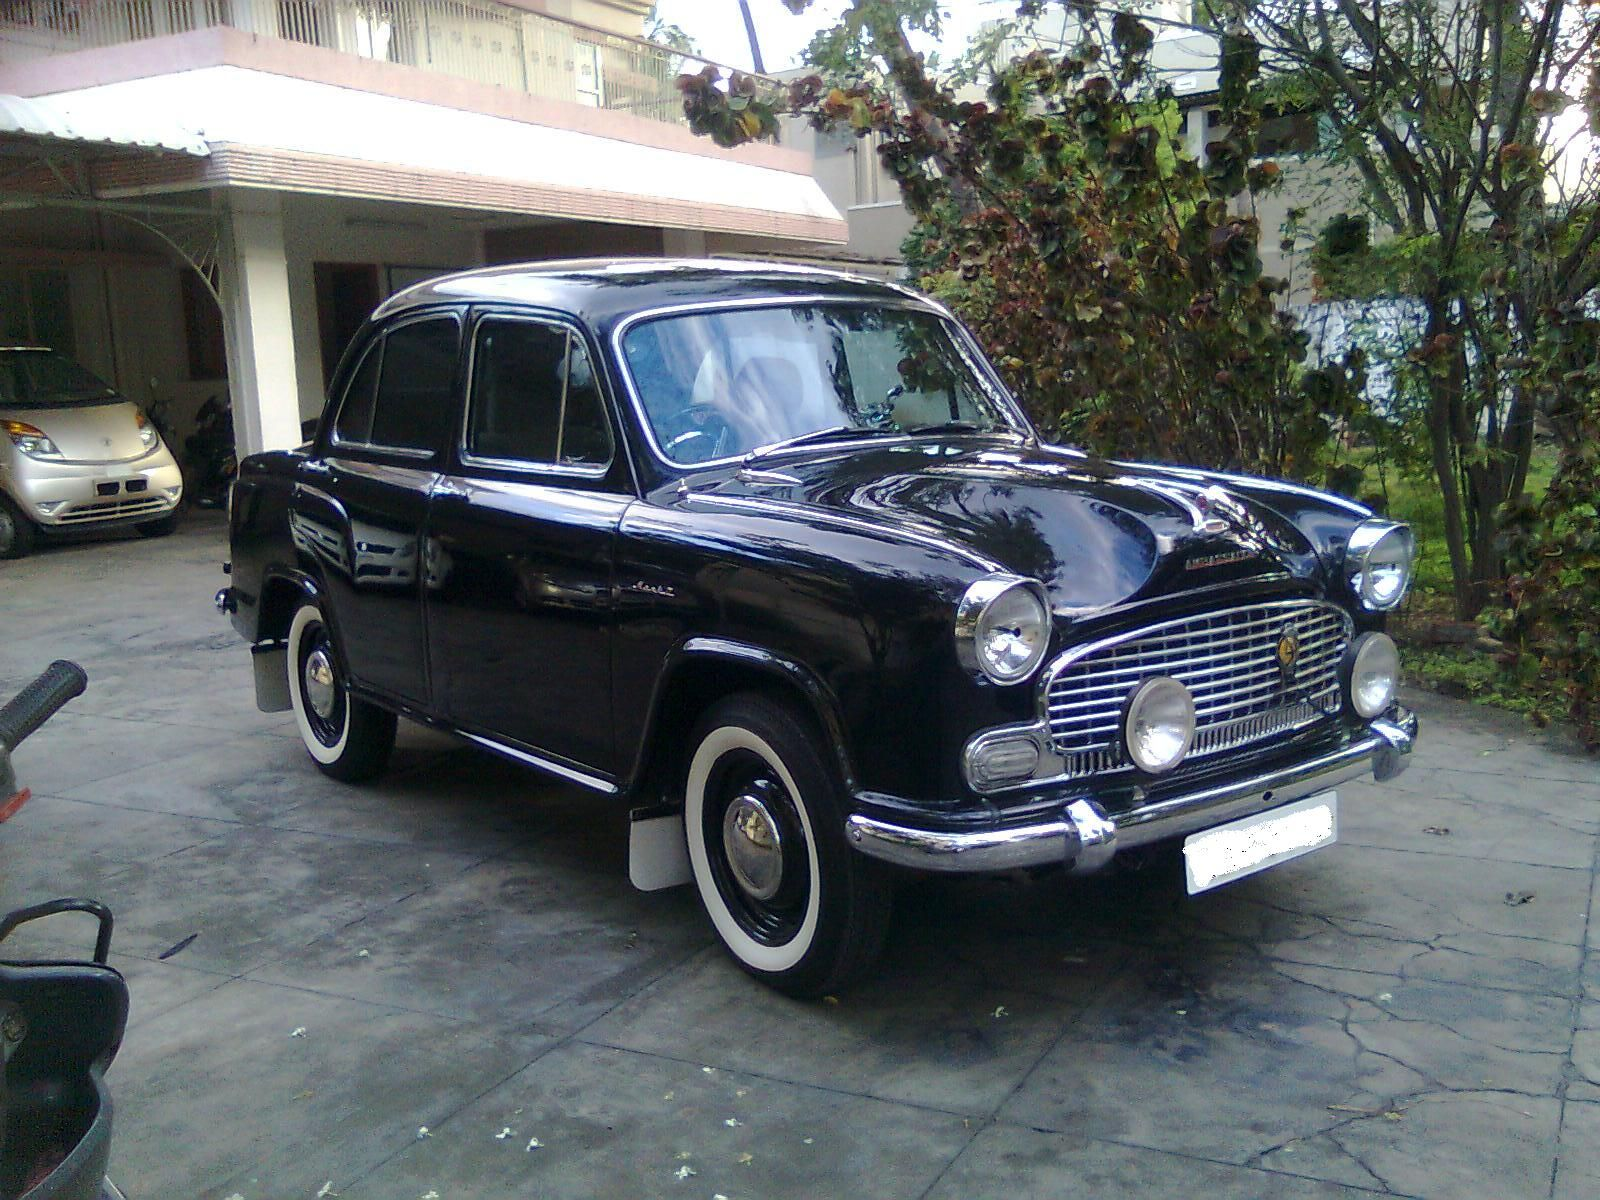 Used HM Ambassador (Before 1970) For Sale In Coimbatore